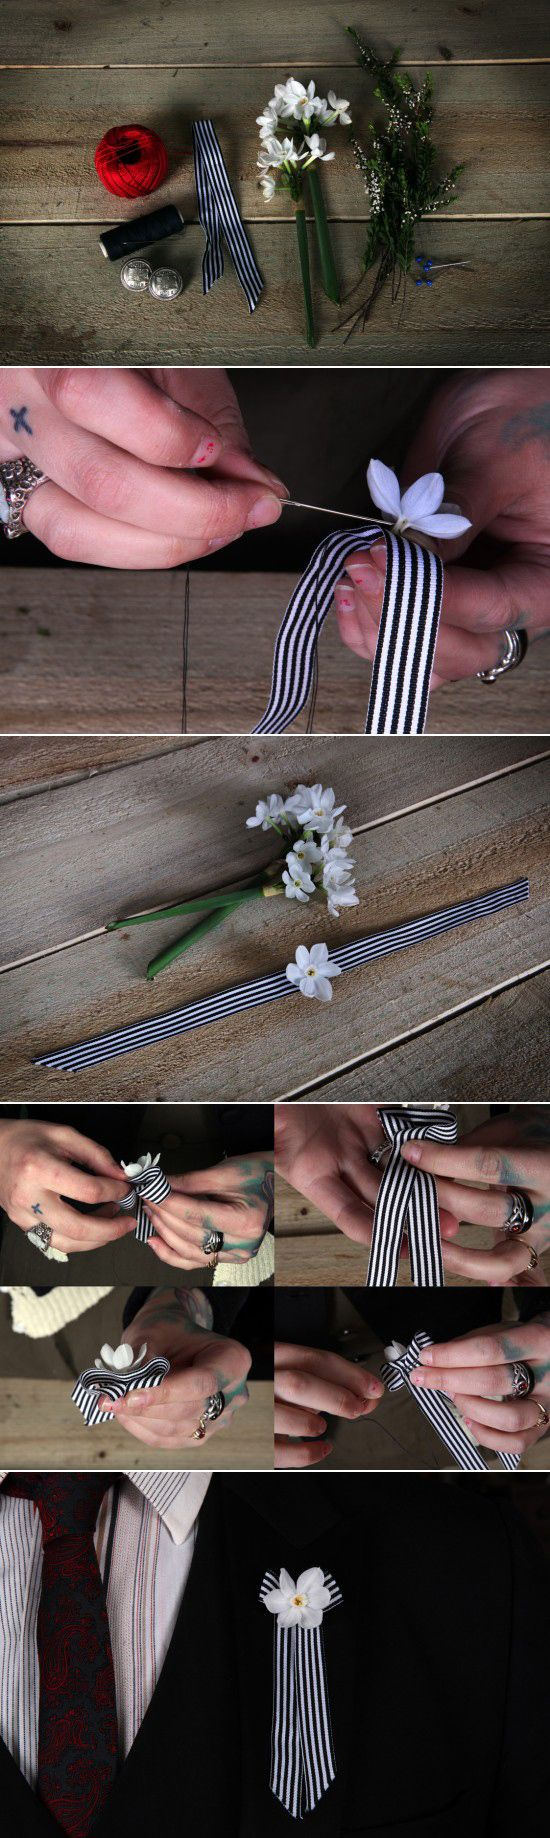 diy buttonholes tutorial ~ by Foxglove Botanicals